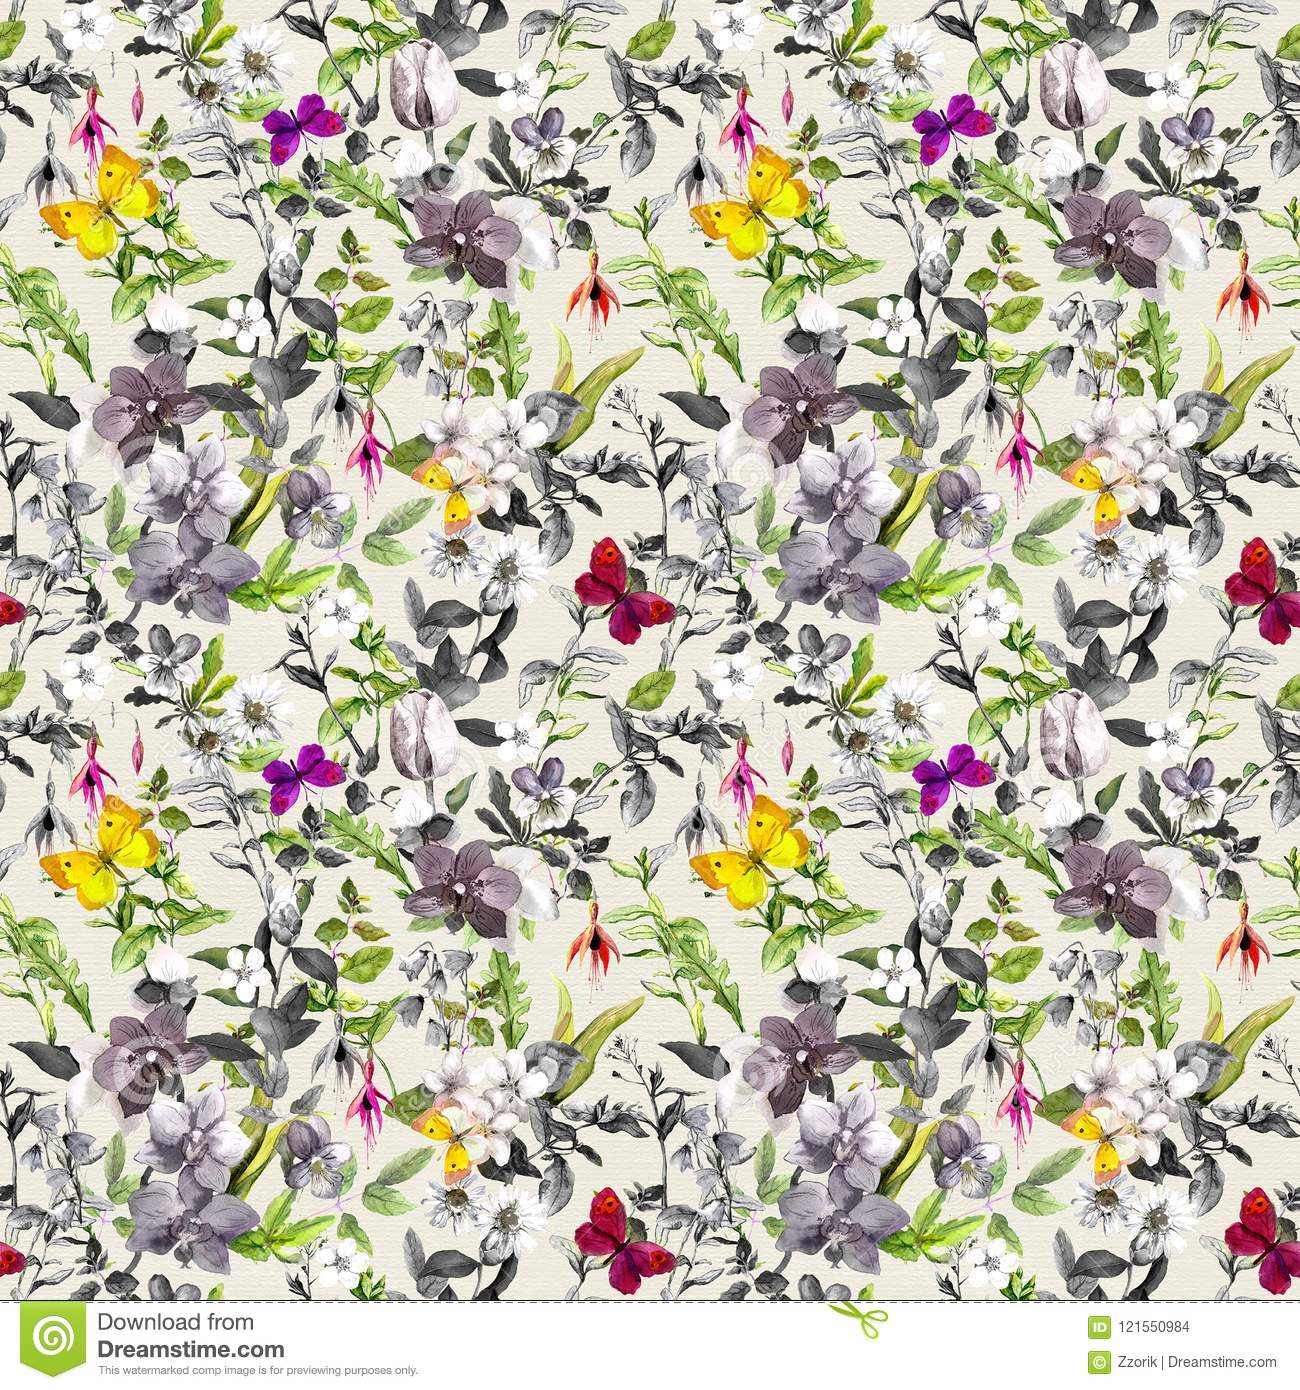 Seamless wallpaper flowers butterflies meadow floral pattern in seamless wallpaper flowers butterflies meadow floral pattern in black and white colors mightylinksfo